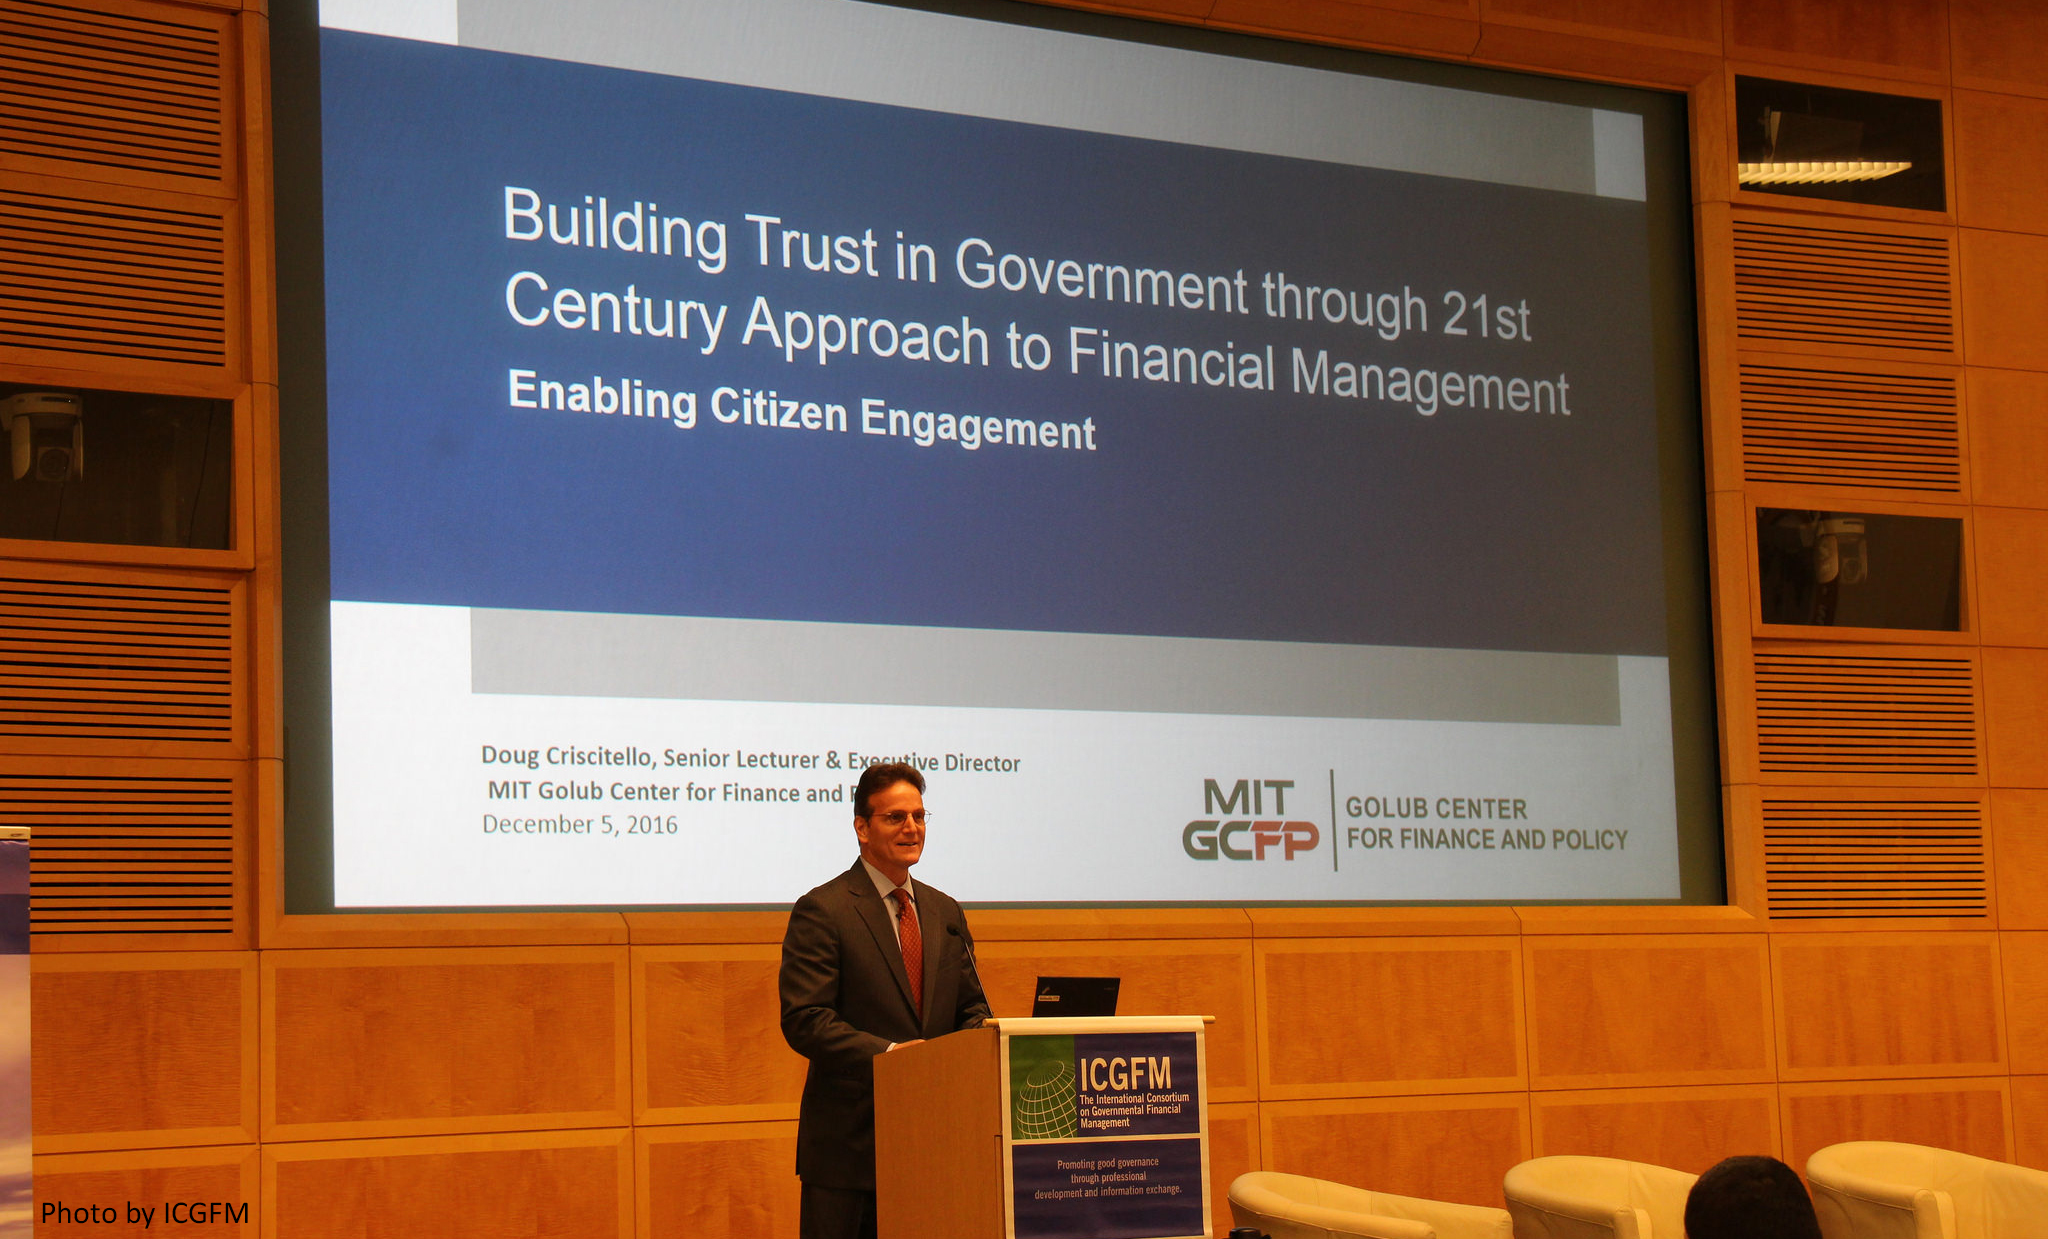 Building Trust in Government through a 21st Century Approach to Financial Management